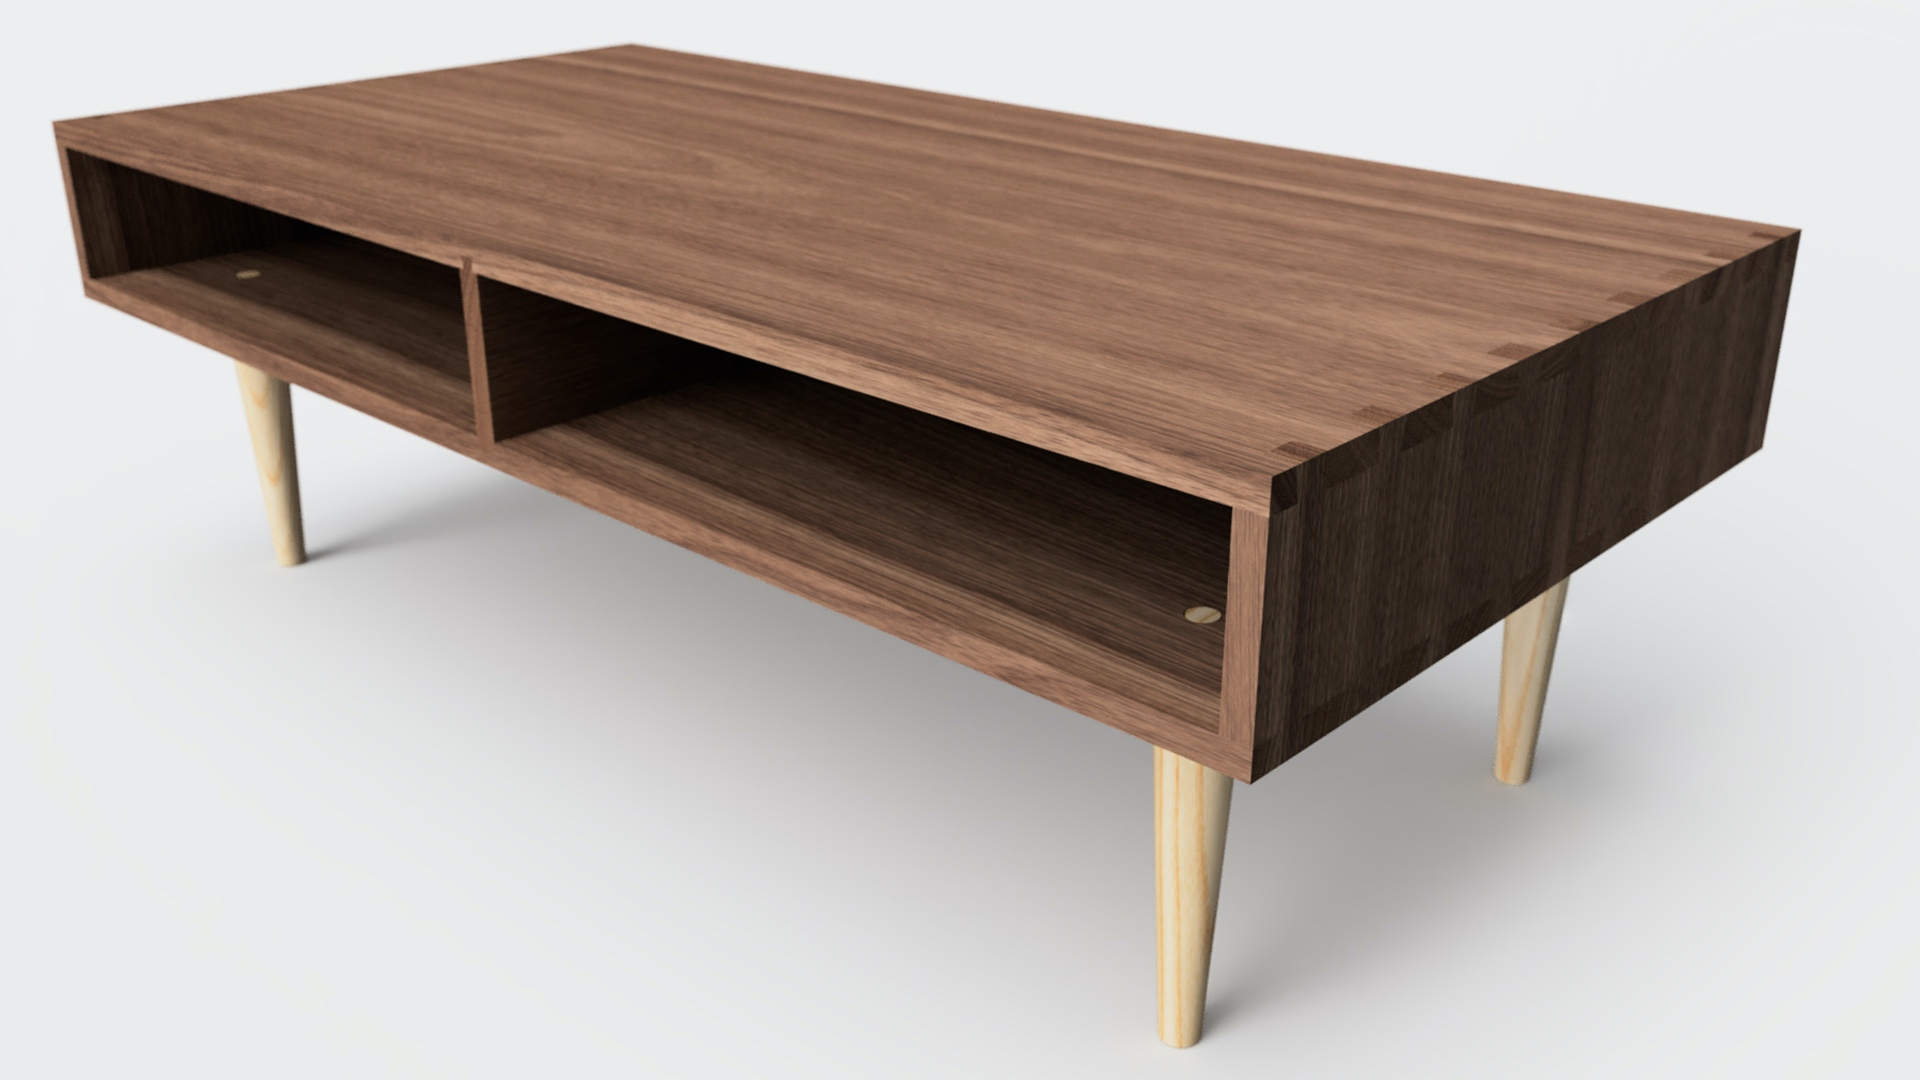 Design a Coffee Table in Fusion 360